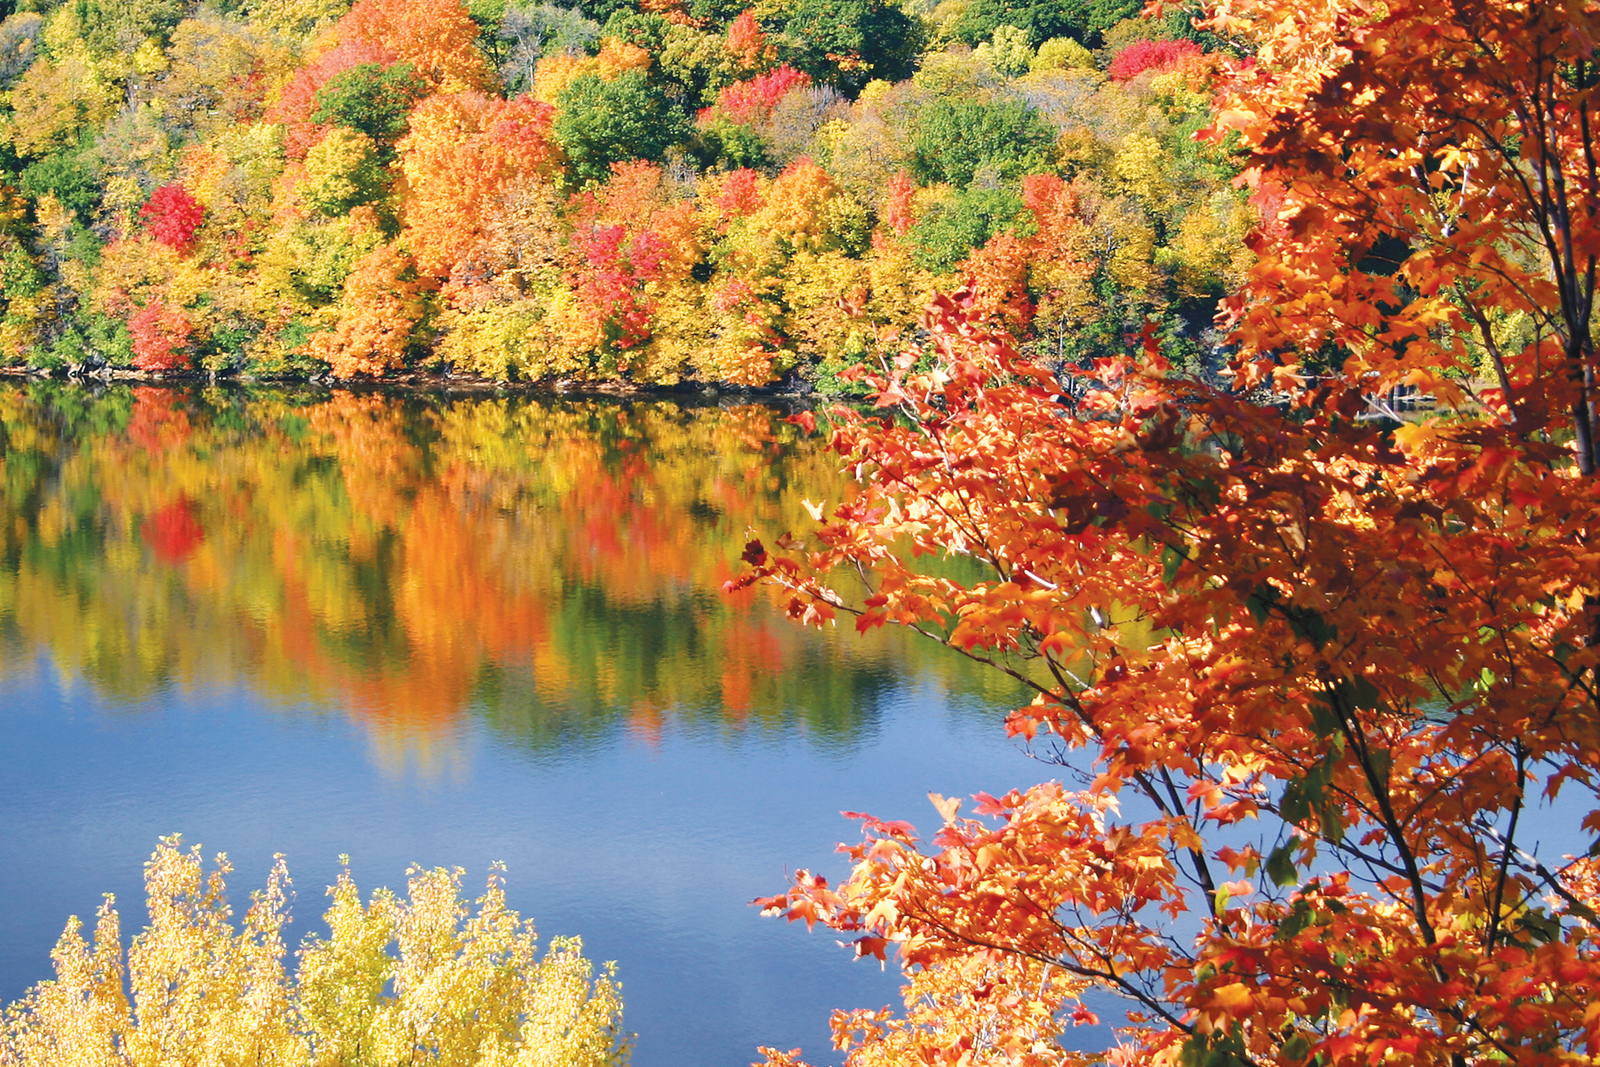 Enjoy the wonderful fall foliage and lake views at this beautiful Morgantown community.